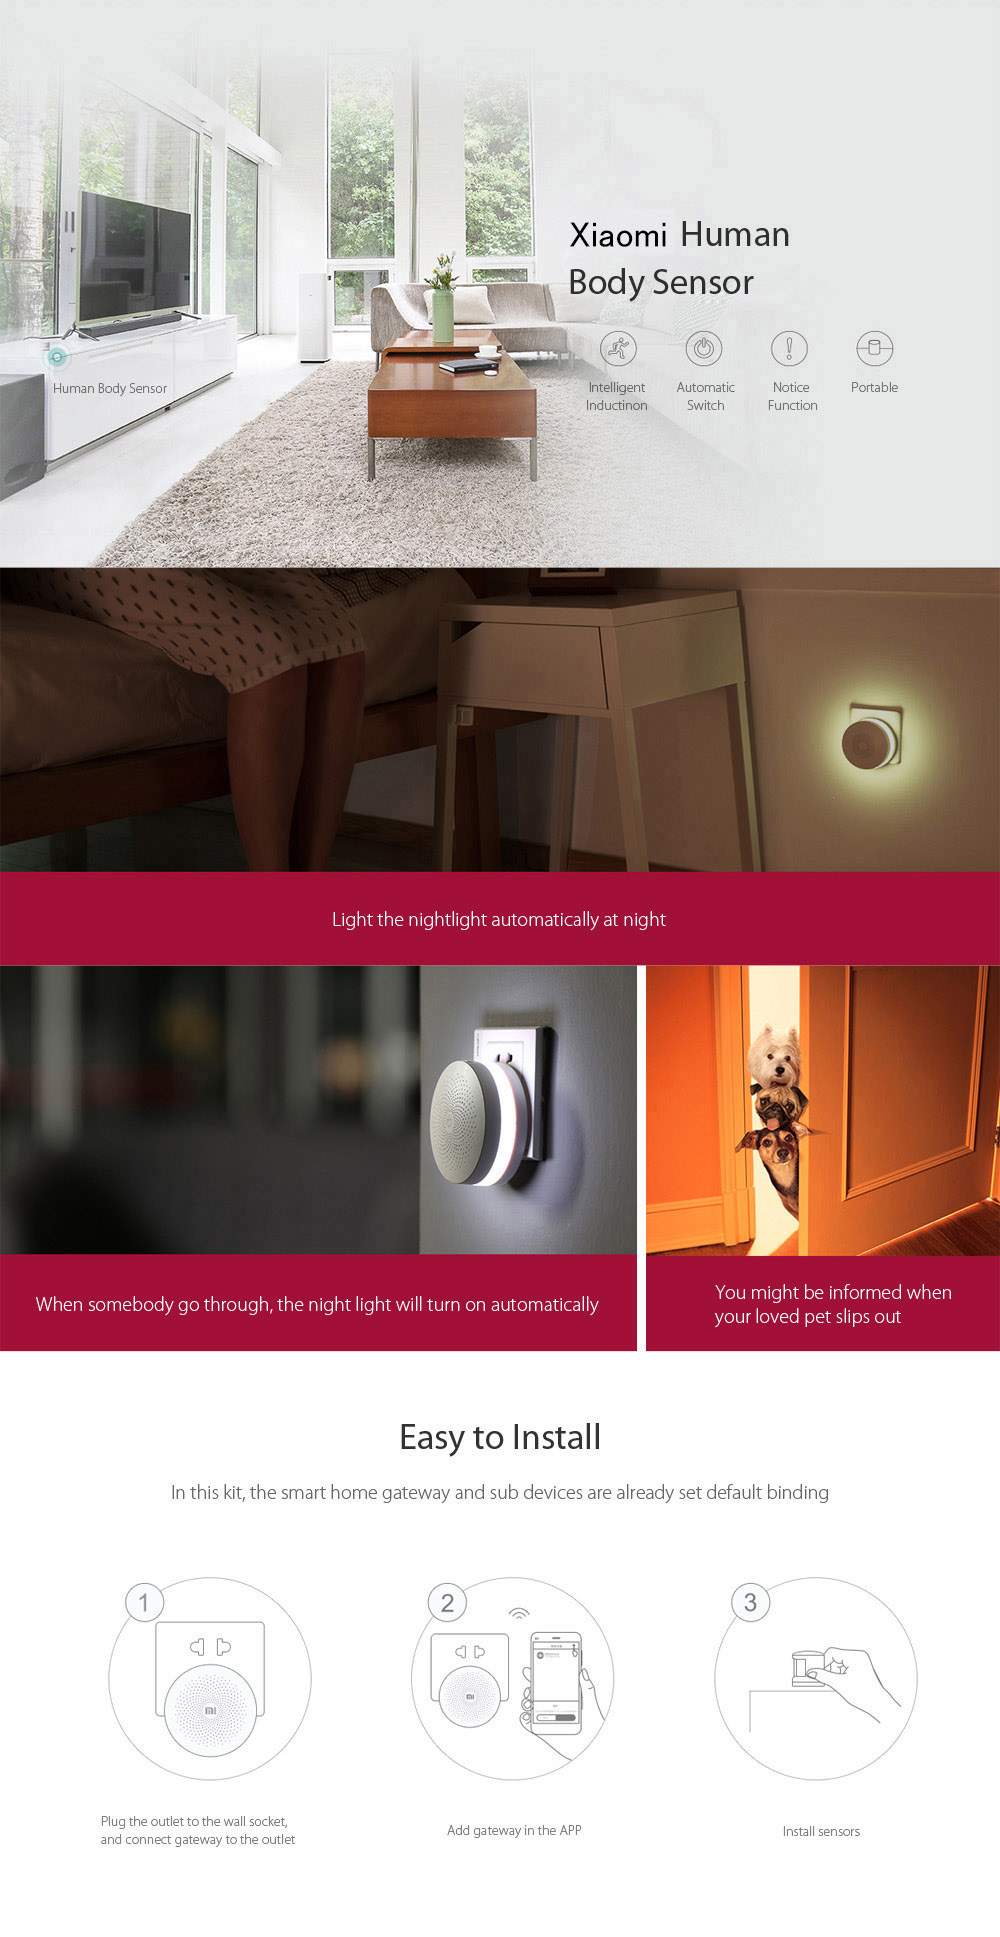 xiaomi mijia 5 in 1 smart home sicherheitsset gateway wifi. Black Bedroom Furniture Sets. Home Design Ideas